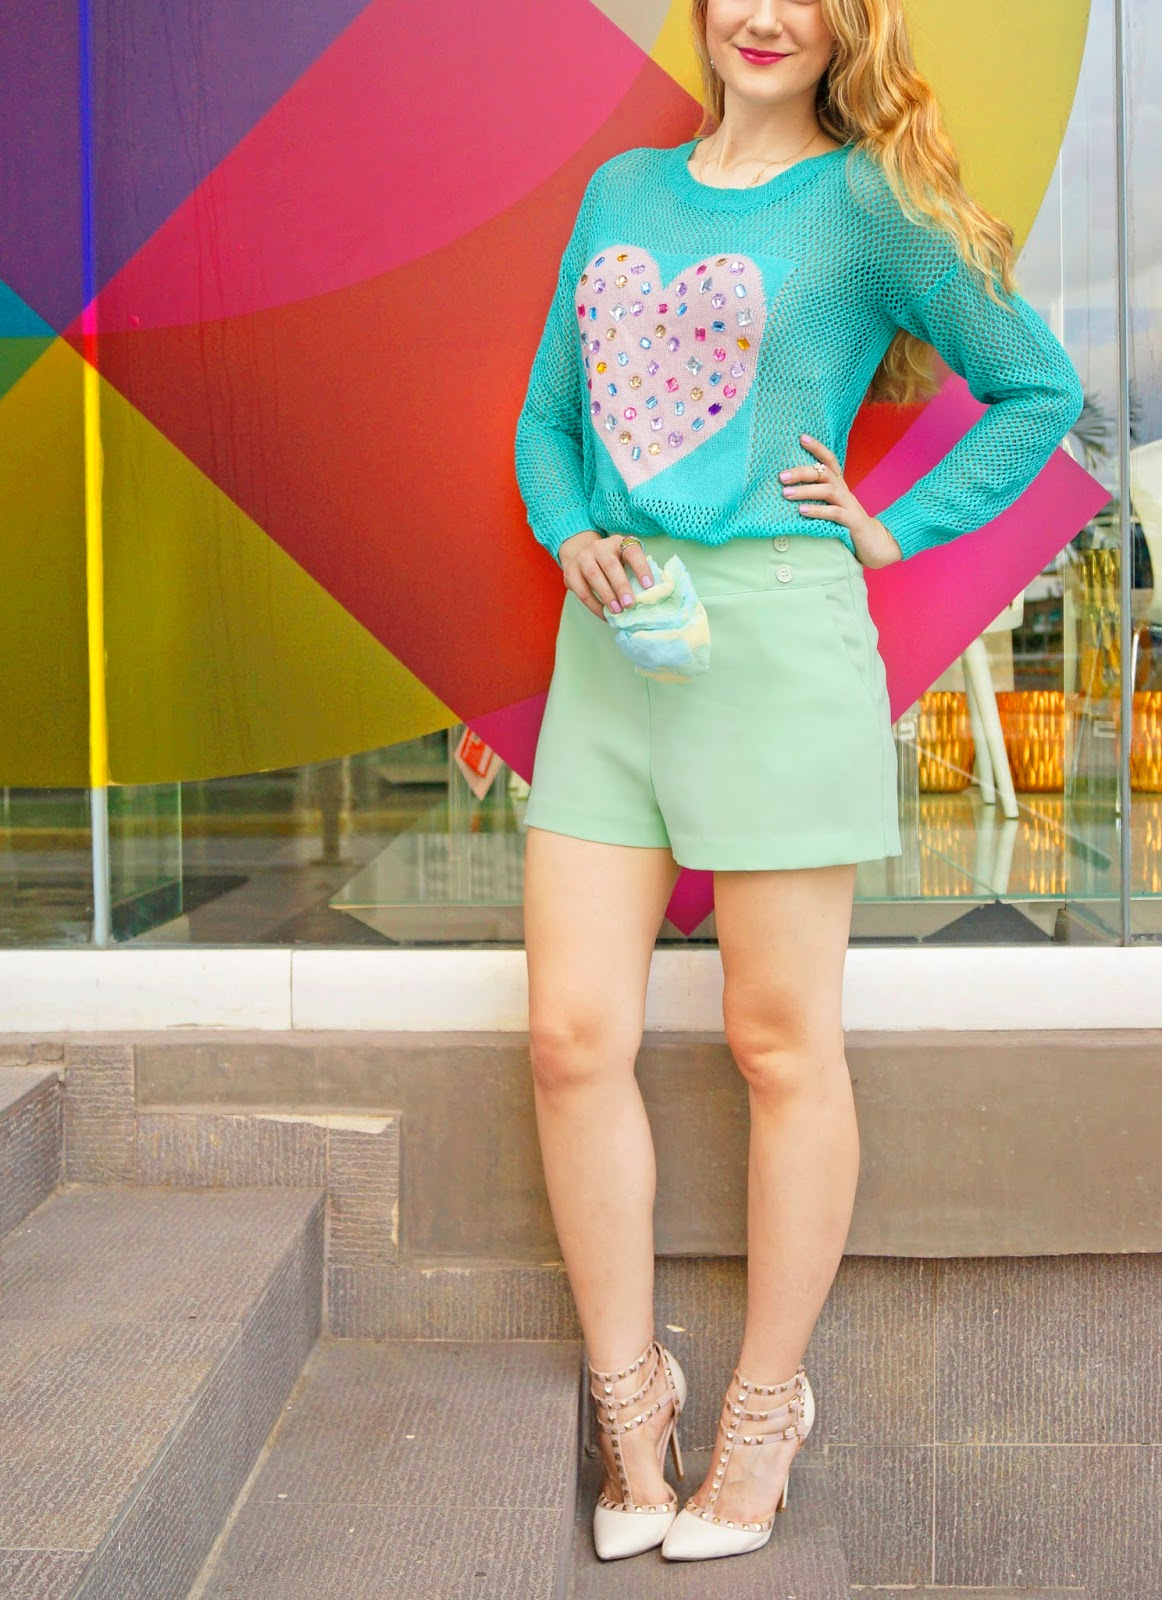 Loving this cute pastel outfit for Spring!